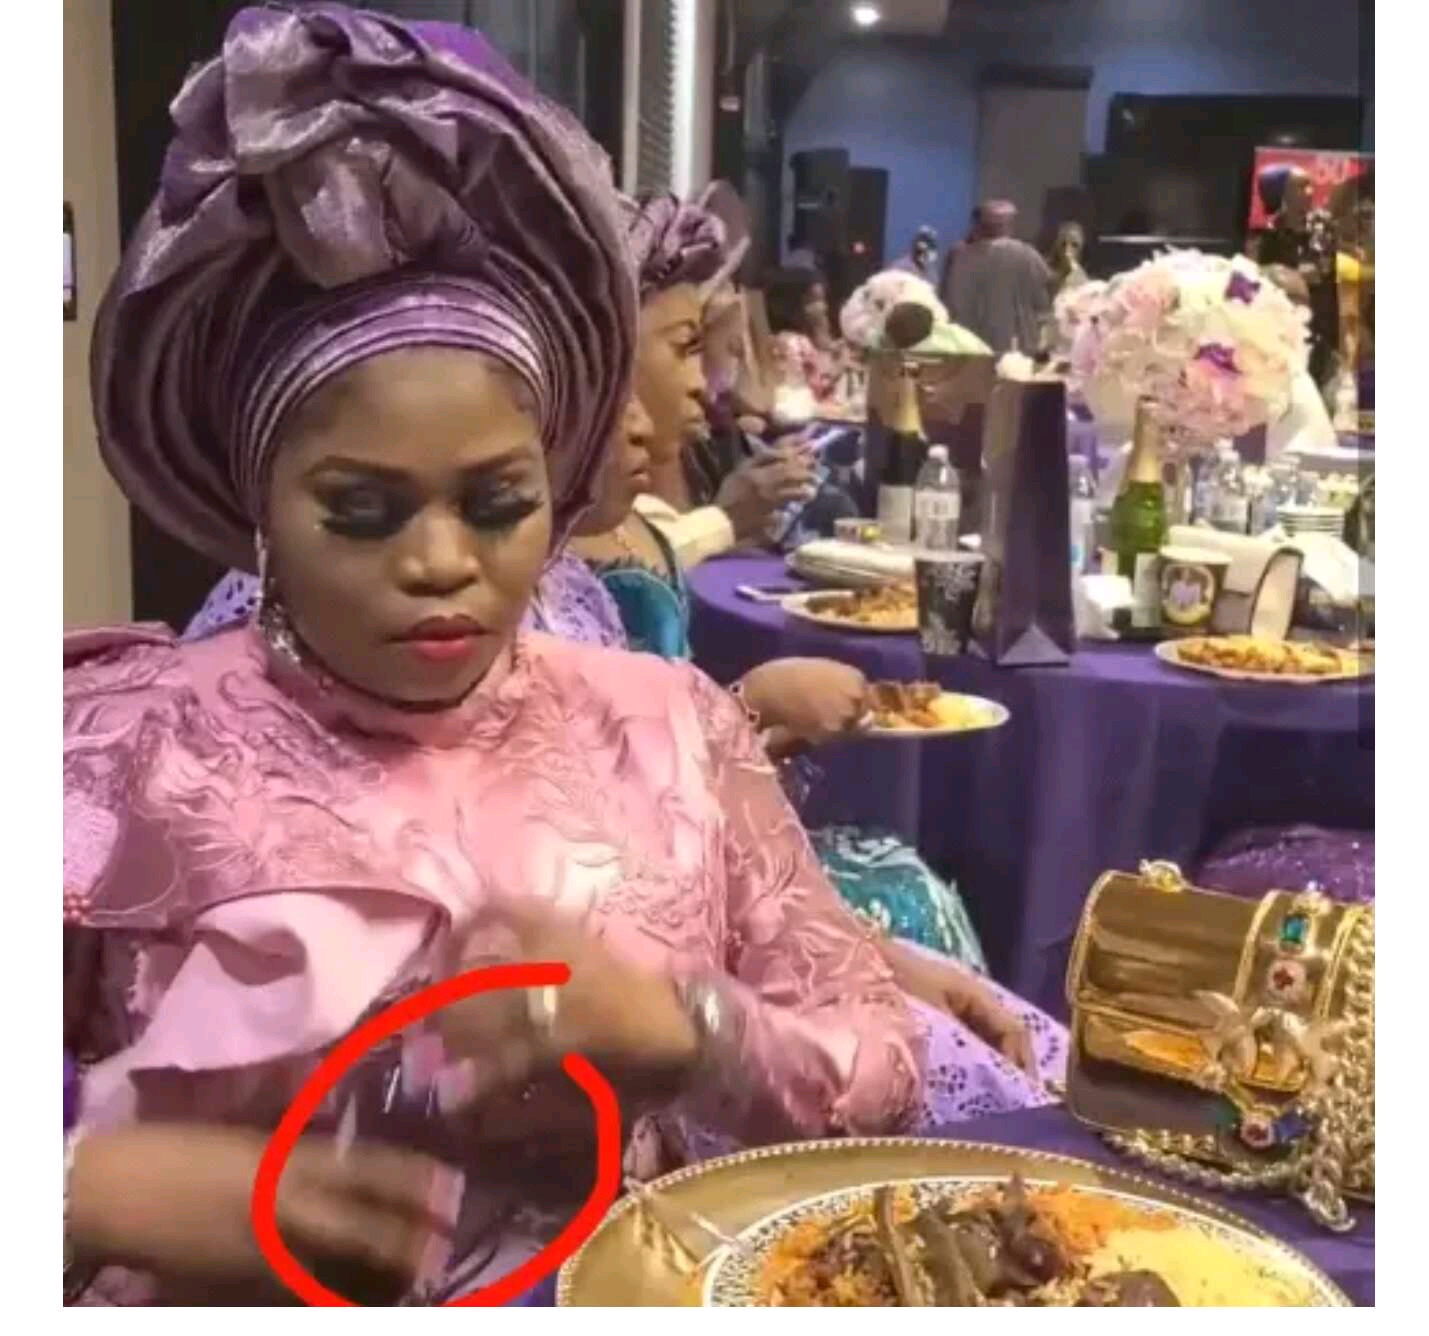 Popular Yoruba Actress Caught On Camera Wrapping Meat Inside Tissue to Take Home